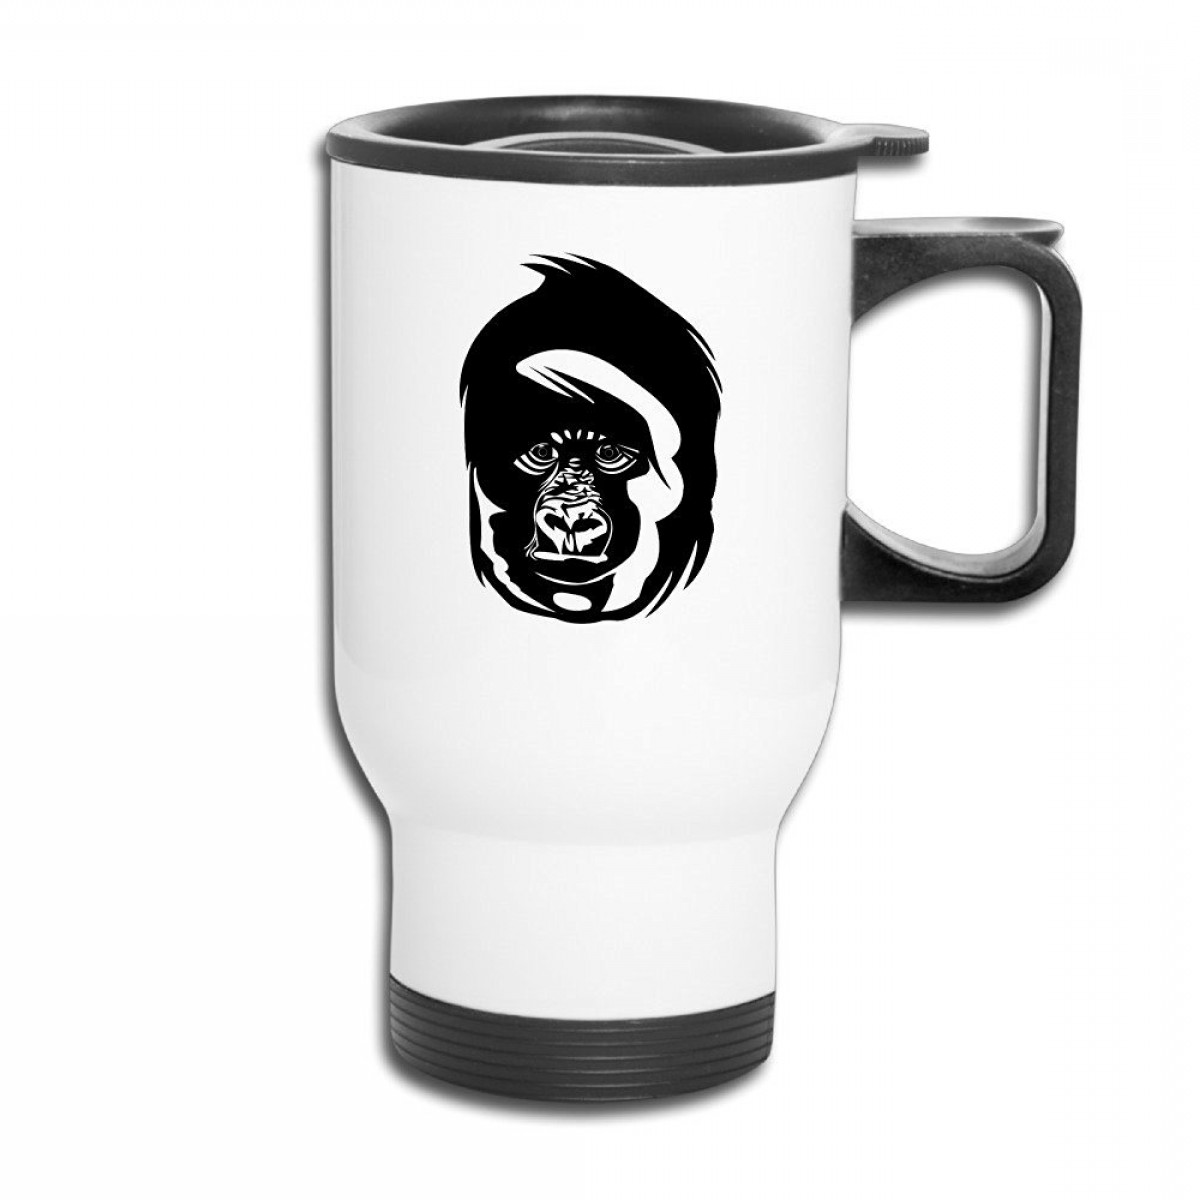 Starbucks China Vector: Clon Gorilla Vector Image Starbucks Travel Mugs